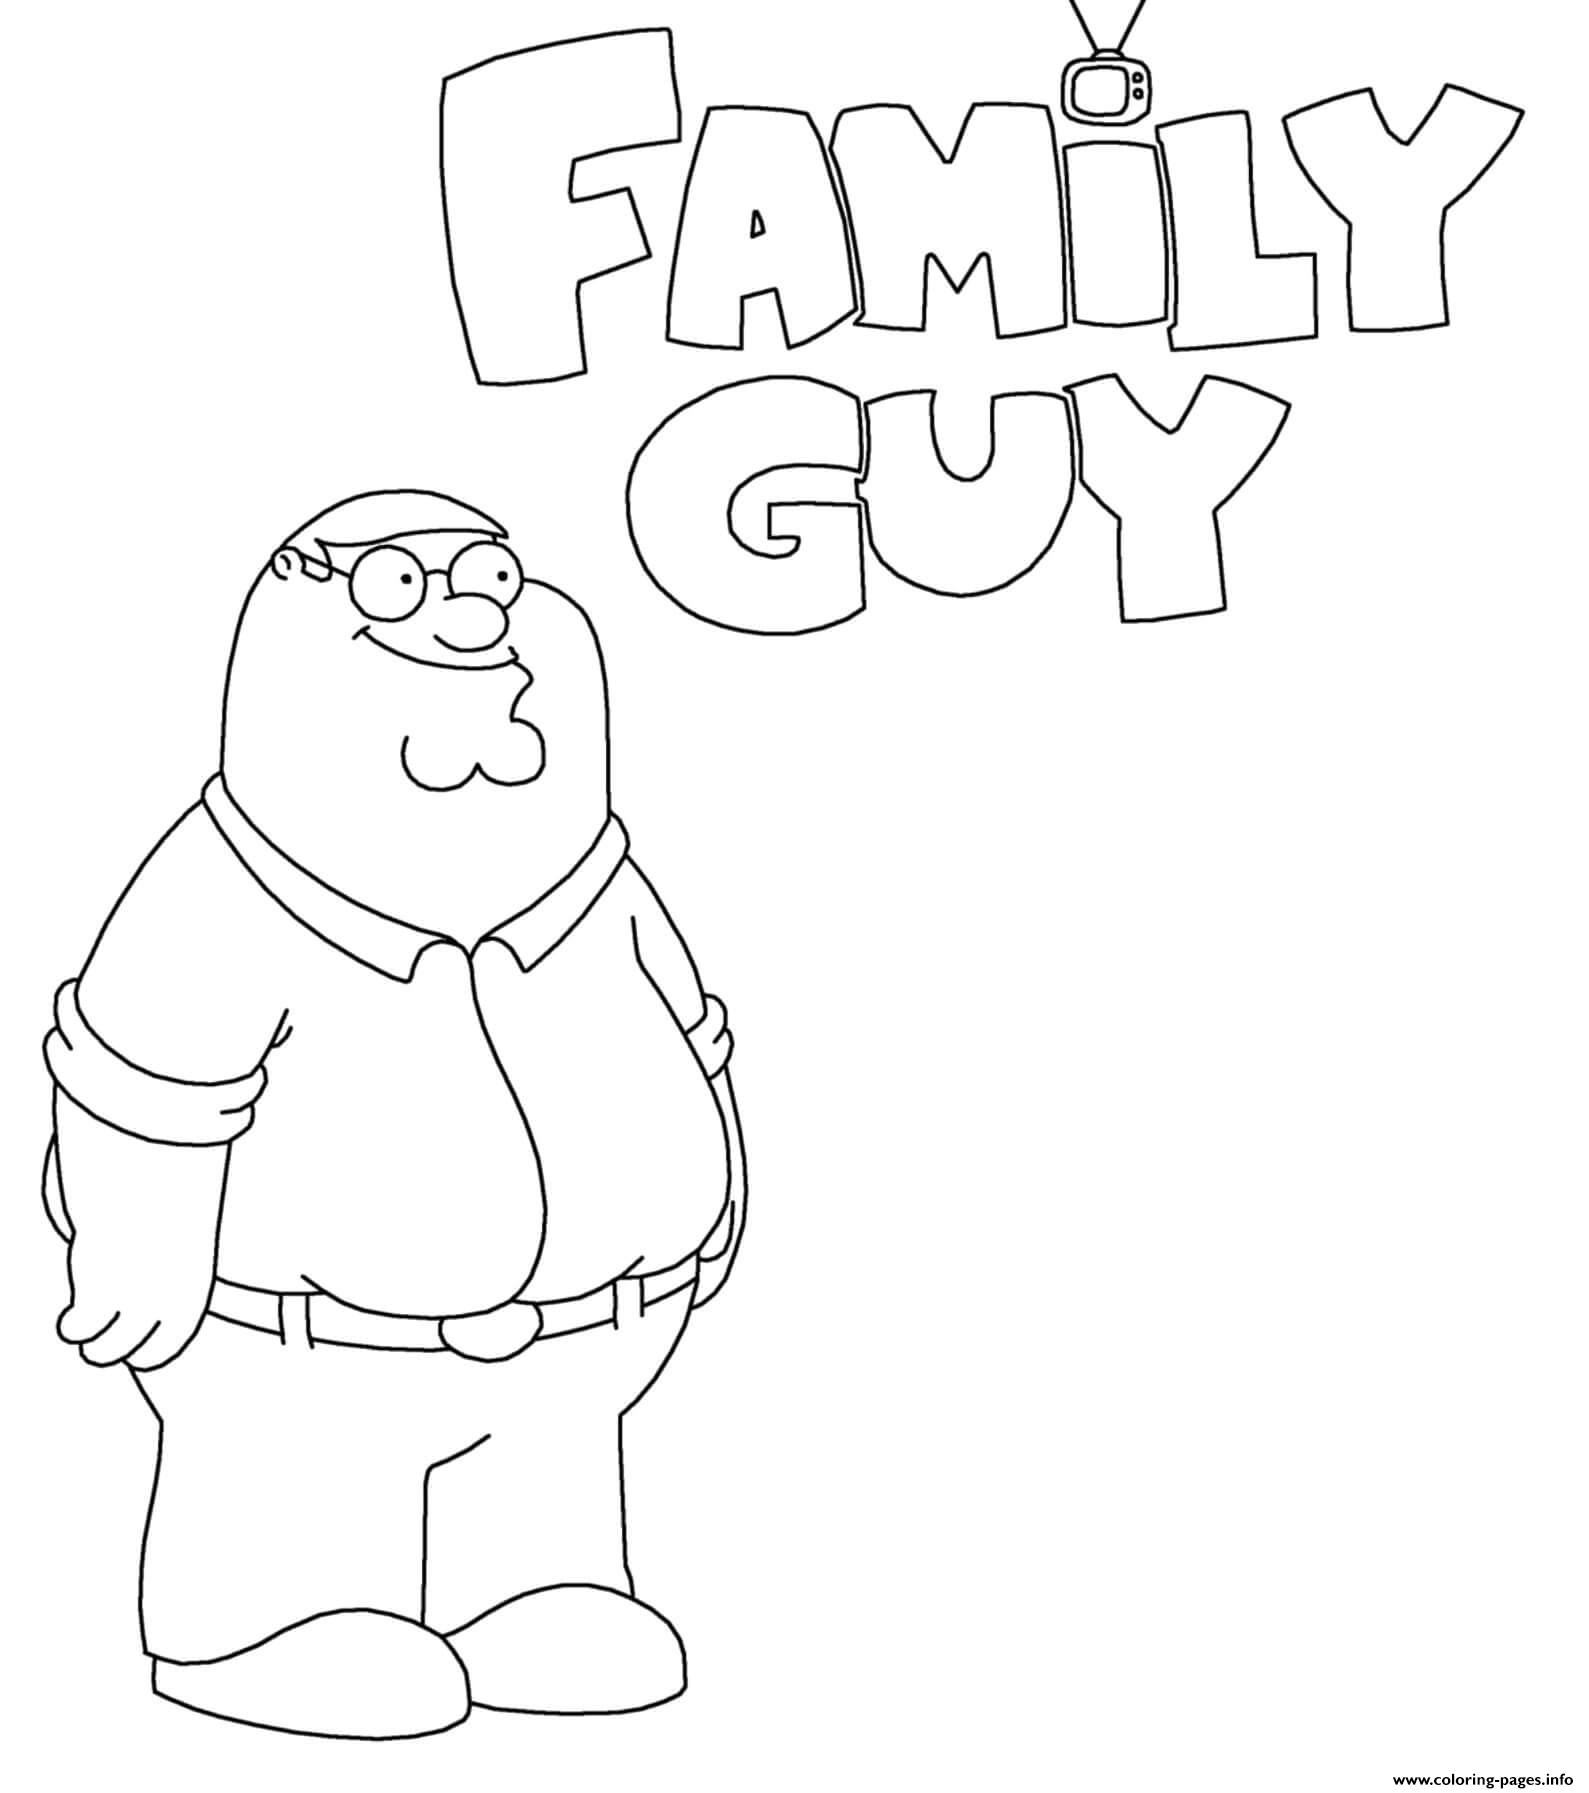 Family Guy Peter Griffin Cartoon coloring pages